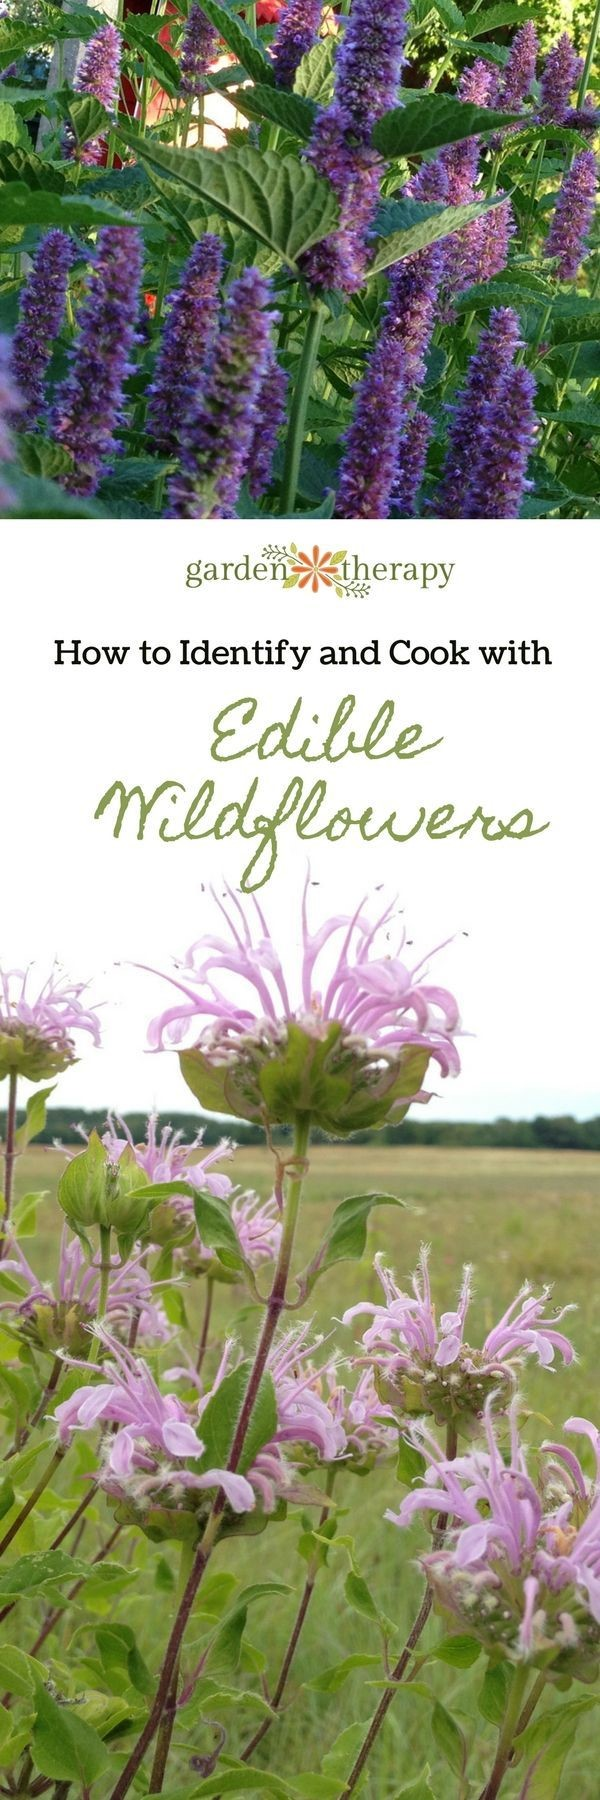 How to Identify and Cook with Edible Wildflowers